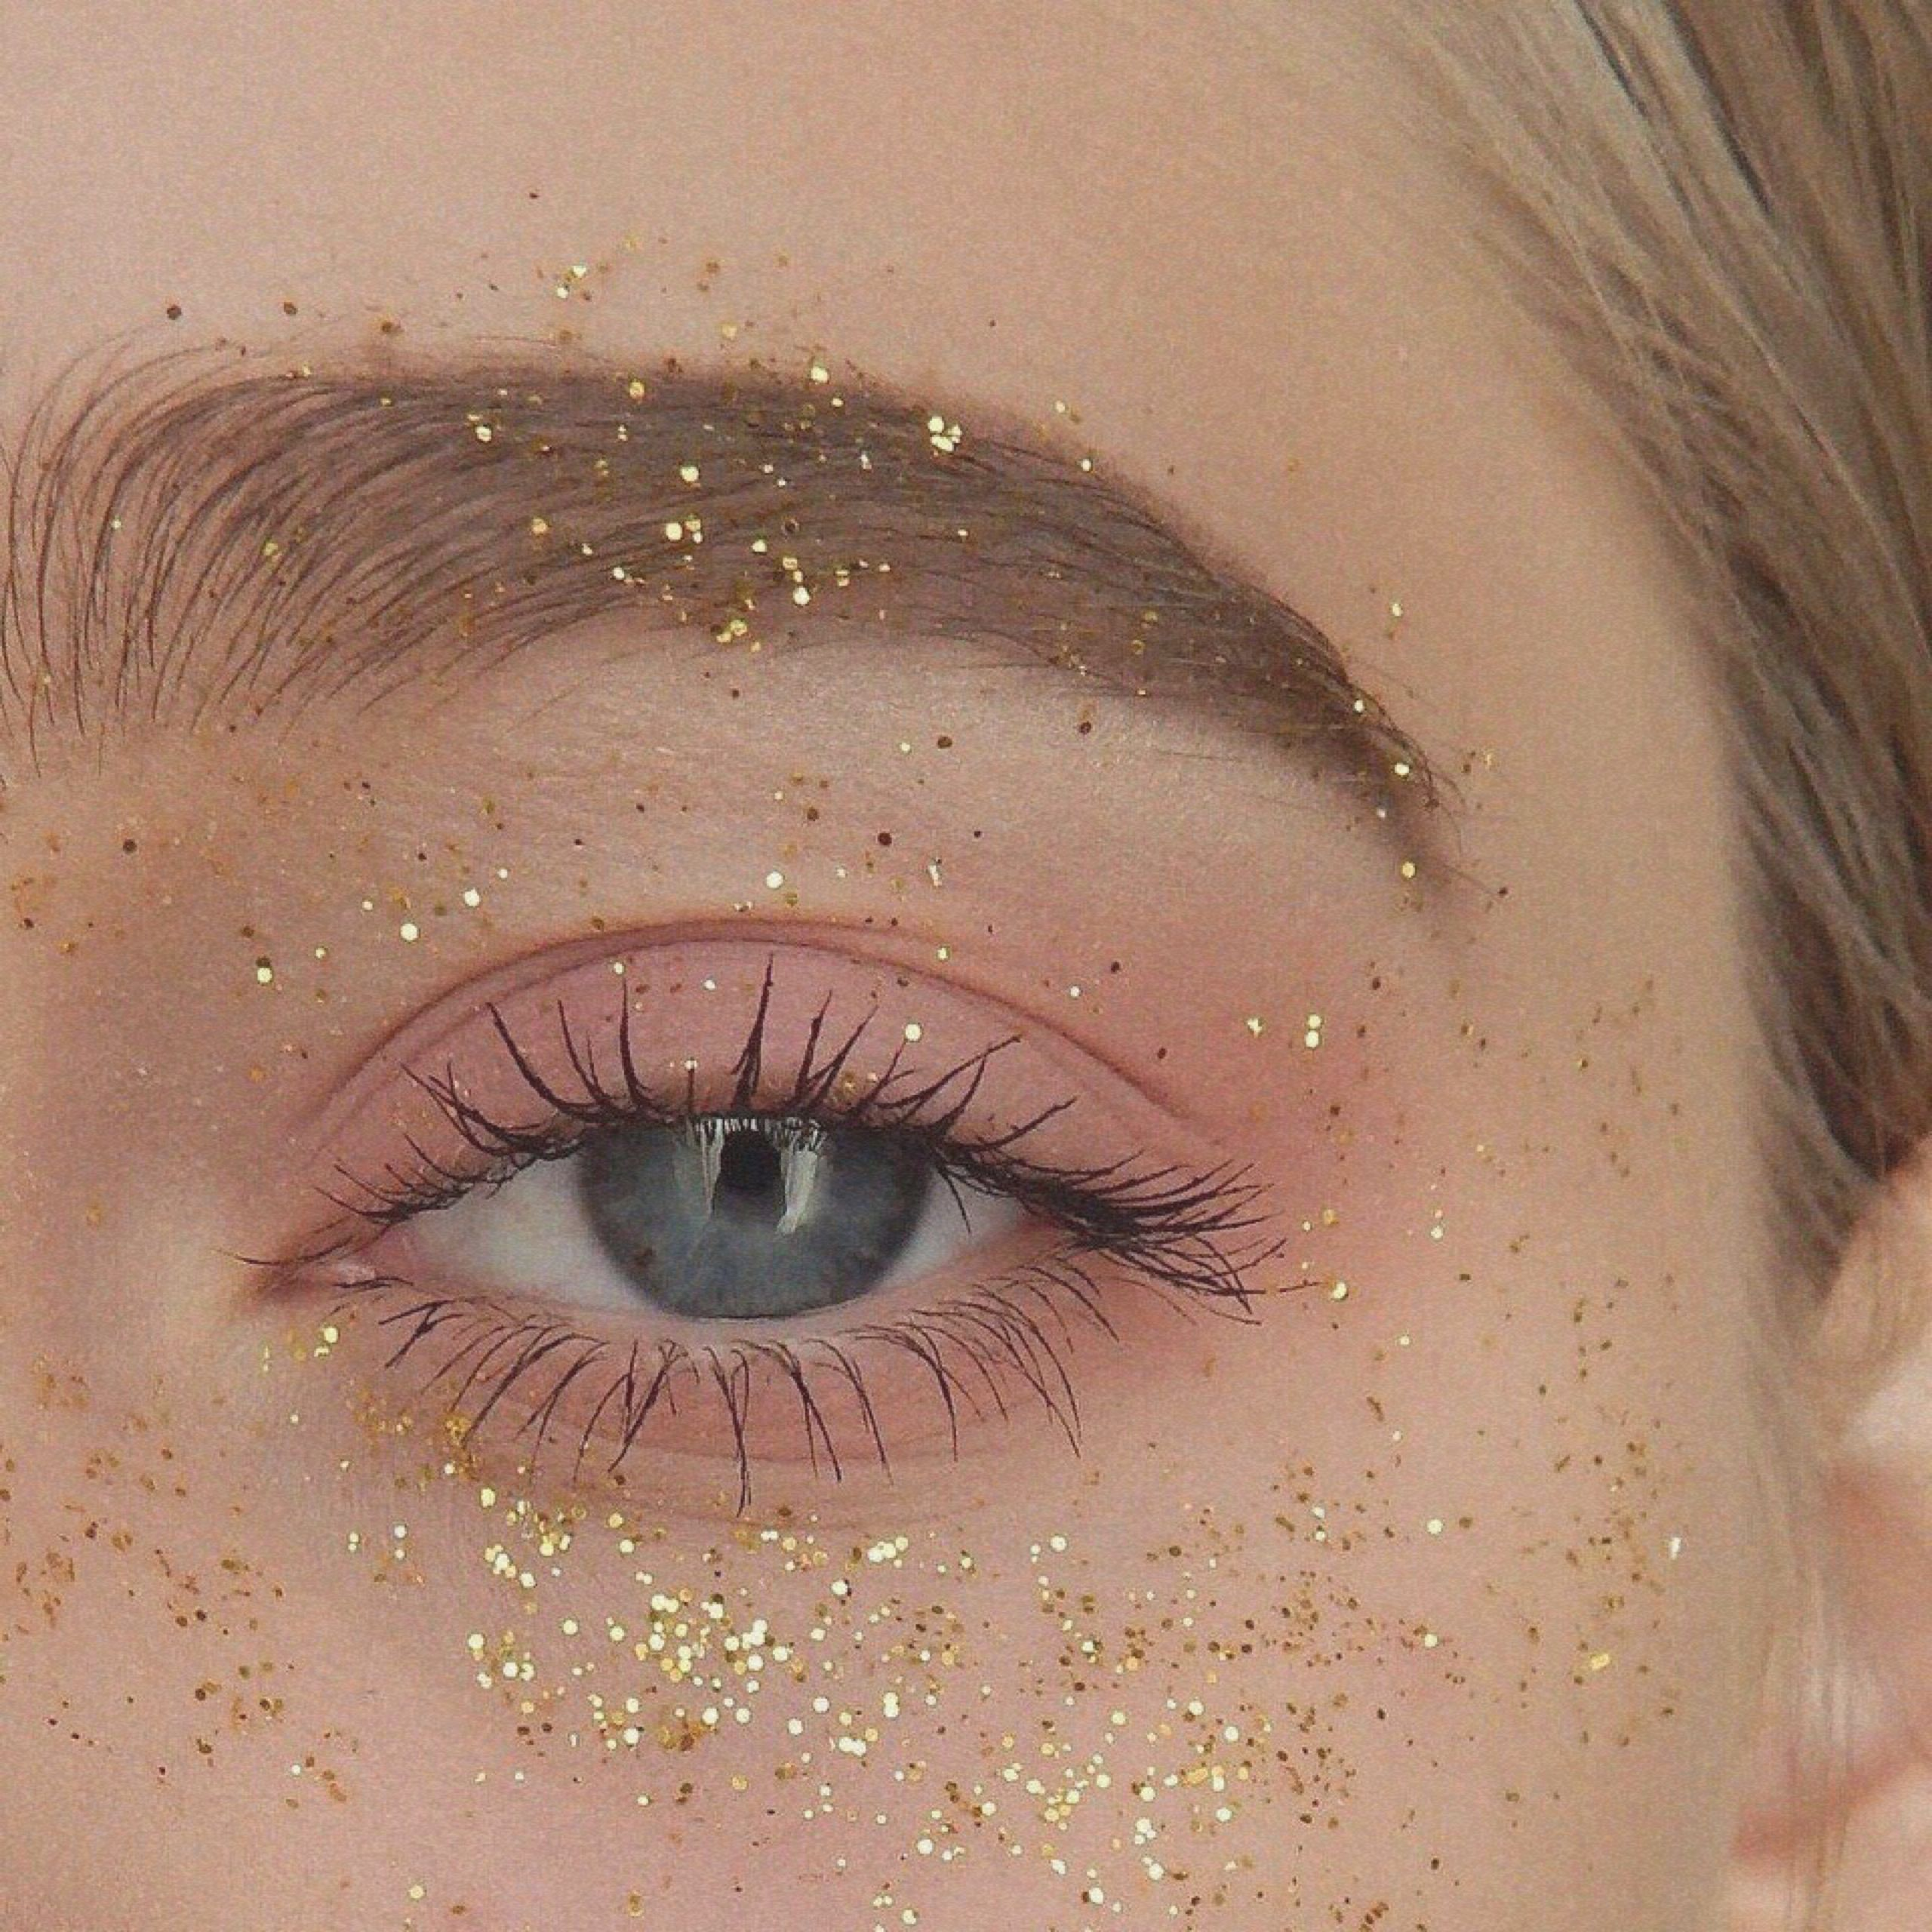 Pin by 𝑺𝒂𝒓𝒂𝒉 𝑱𝒂𝒄𝒌 on palette Aesthetic makeup, Aesthetic